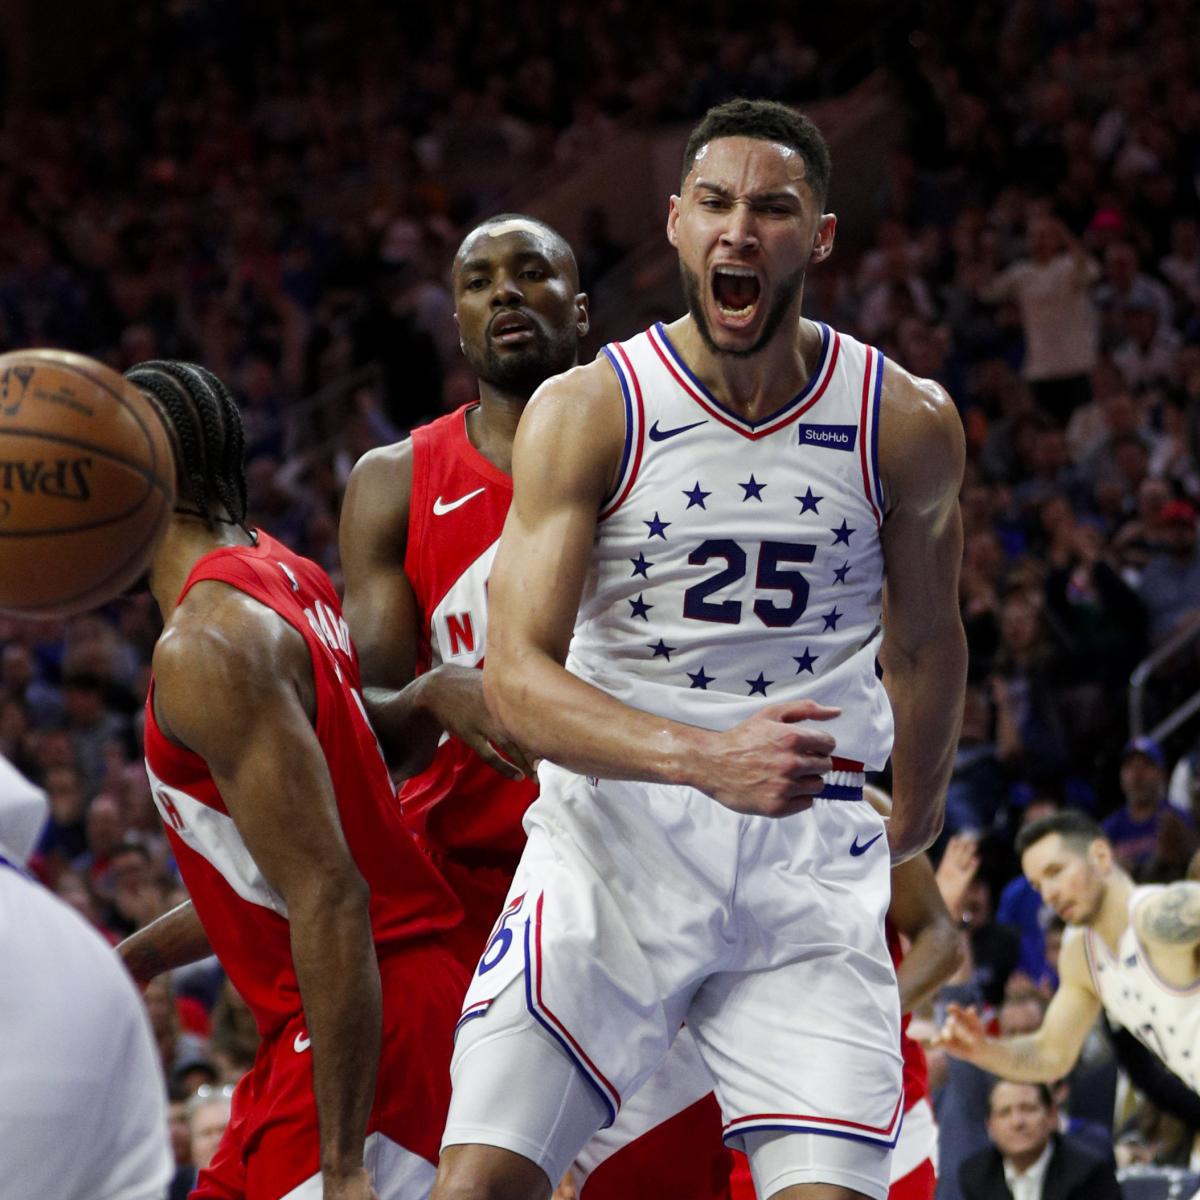 Game 7 awaits in the second-round series between the Toronto Raptors and Philadelphia 76ers. Philadelphia made sure of it with a 112-101 victory in Thursday's Game 6 at the Wells Fargo Center...